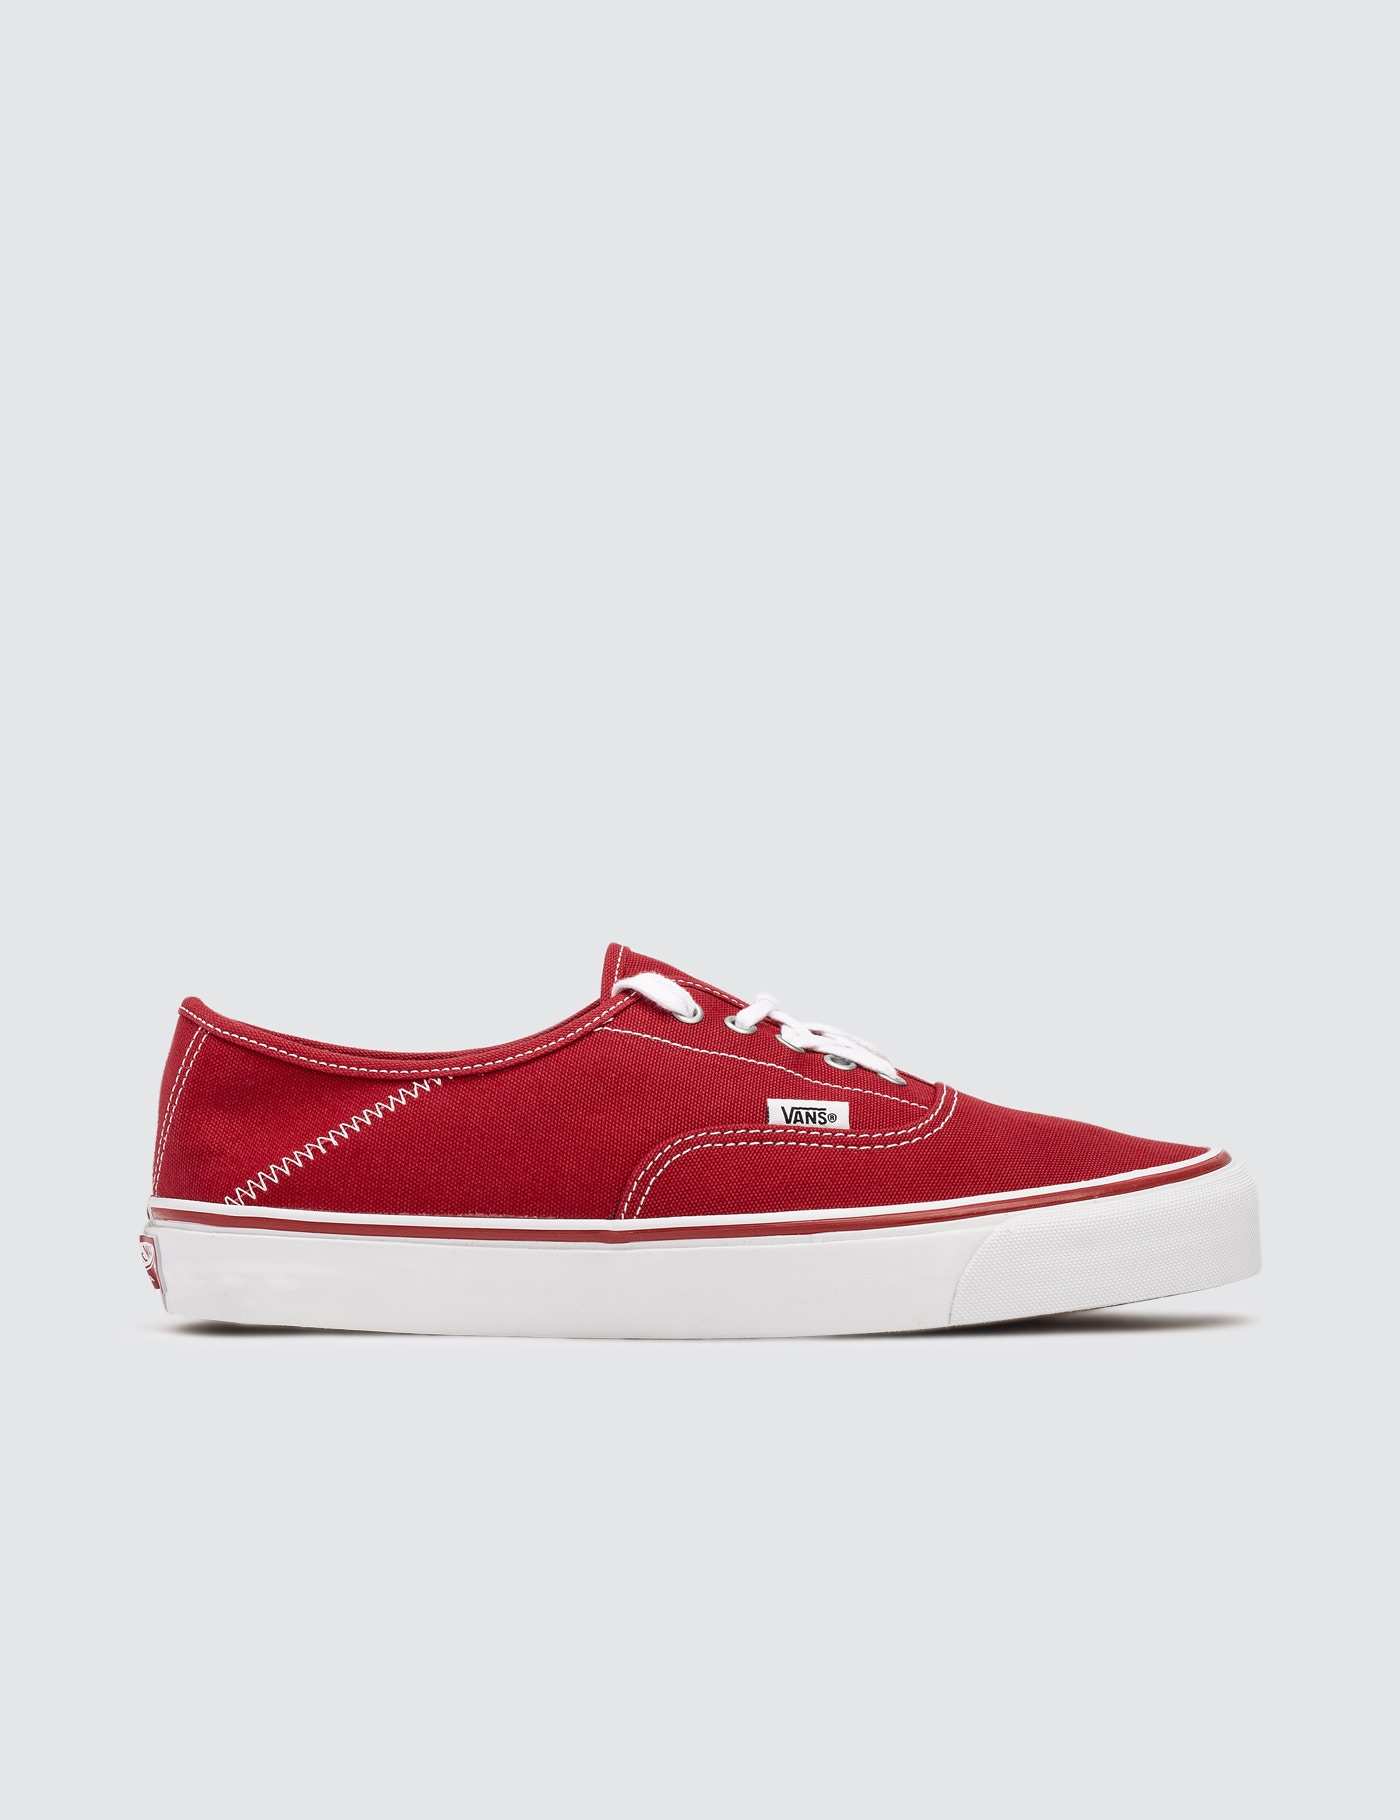 Buy Original Vans Alyx x OG Style 43 Authentic Fold Down at ... cbc49f456